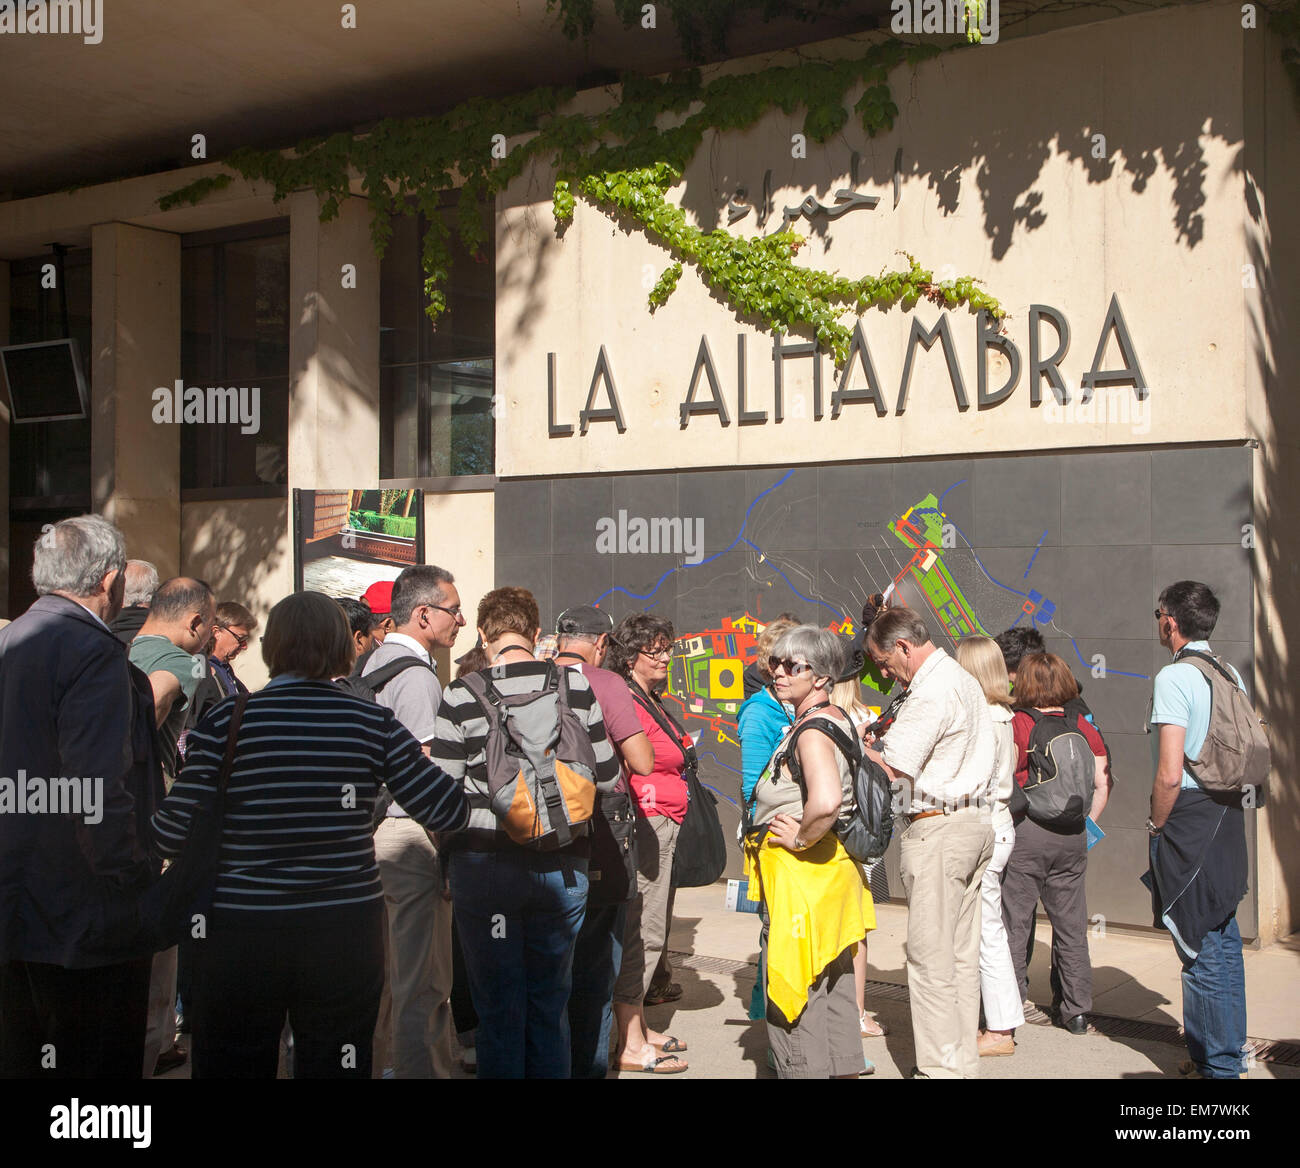 Groups of tourists wait in line at the entrance to the Alhambra, Granada, Spain - Stock Image